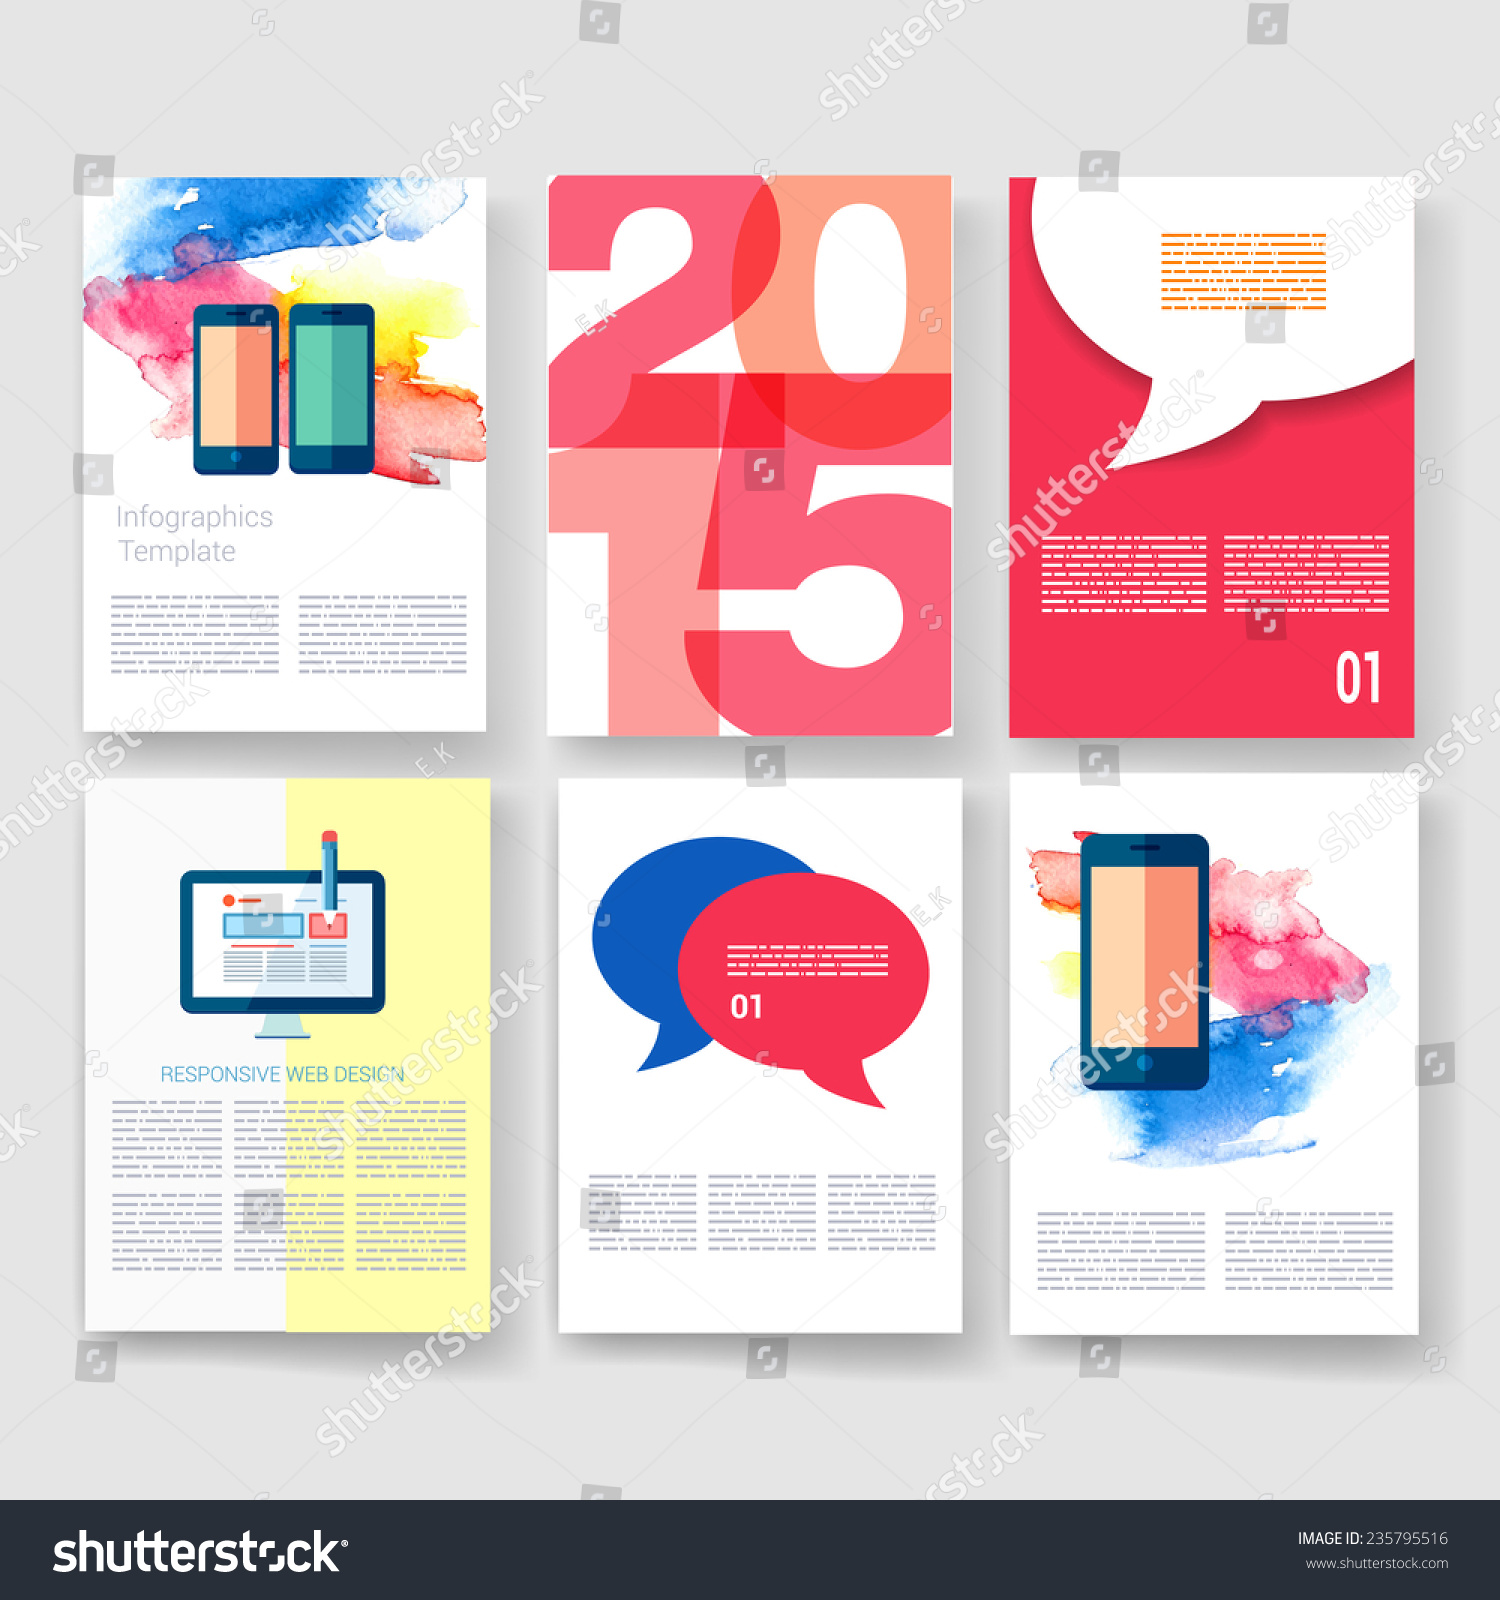 stock vector vector brochure design templates collection ad and infographic concept flyer brochure design 235795516 Top Result 60 Inspirational Paper Ad Design Templates